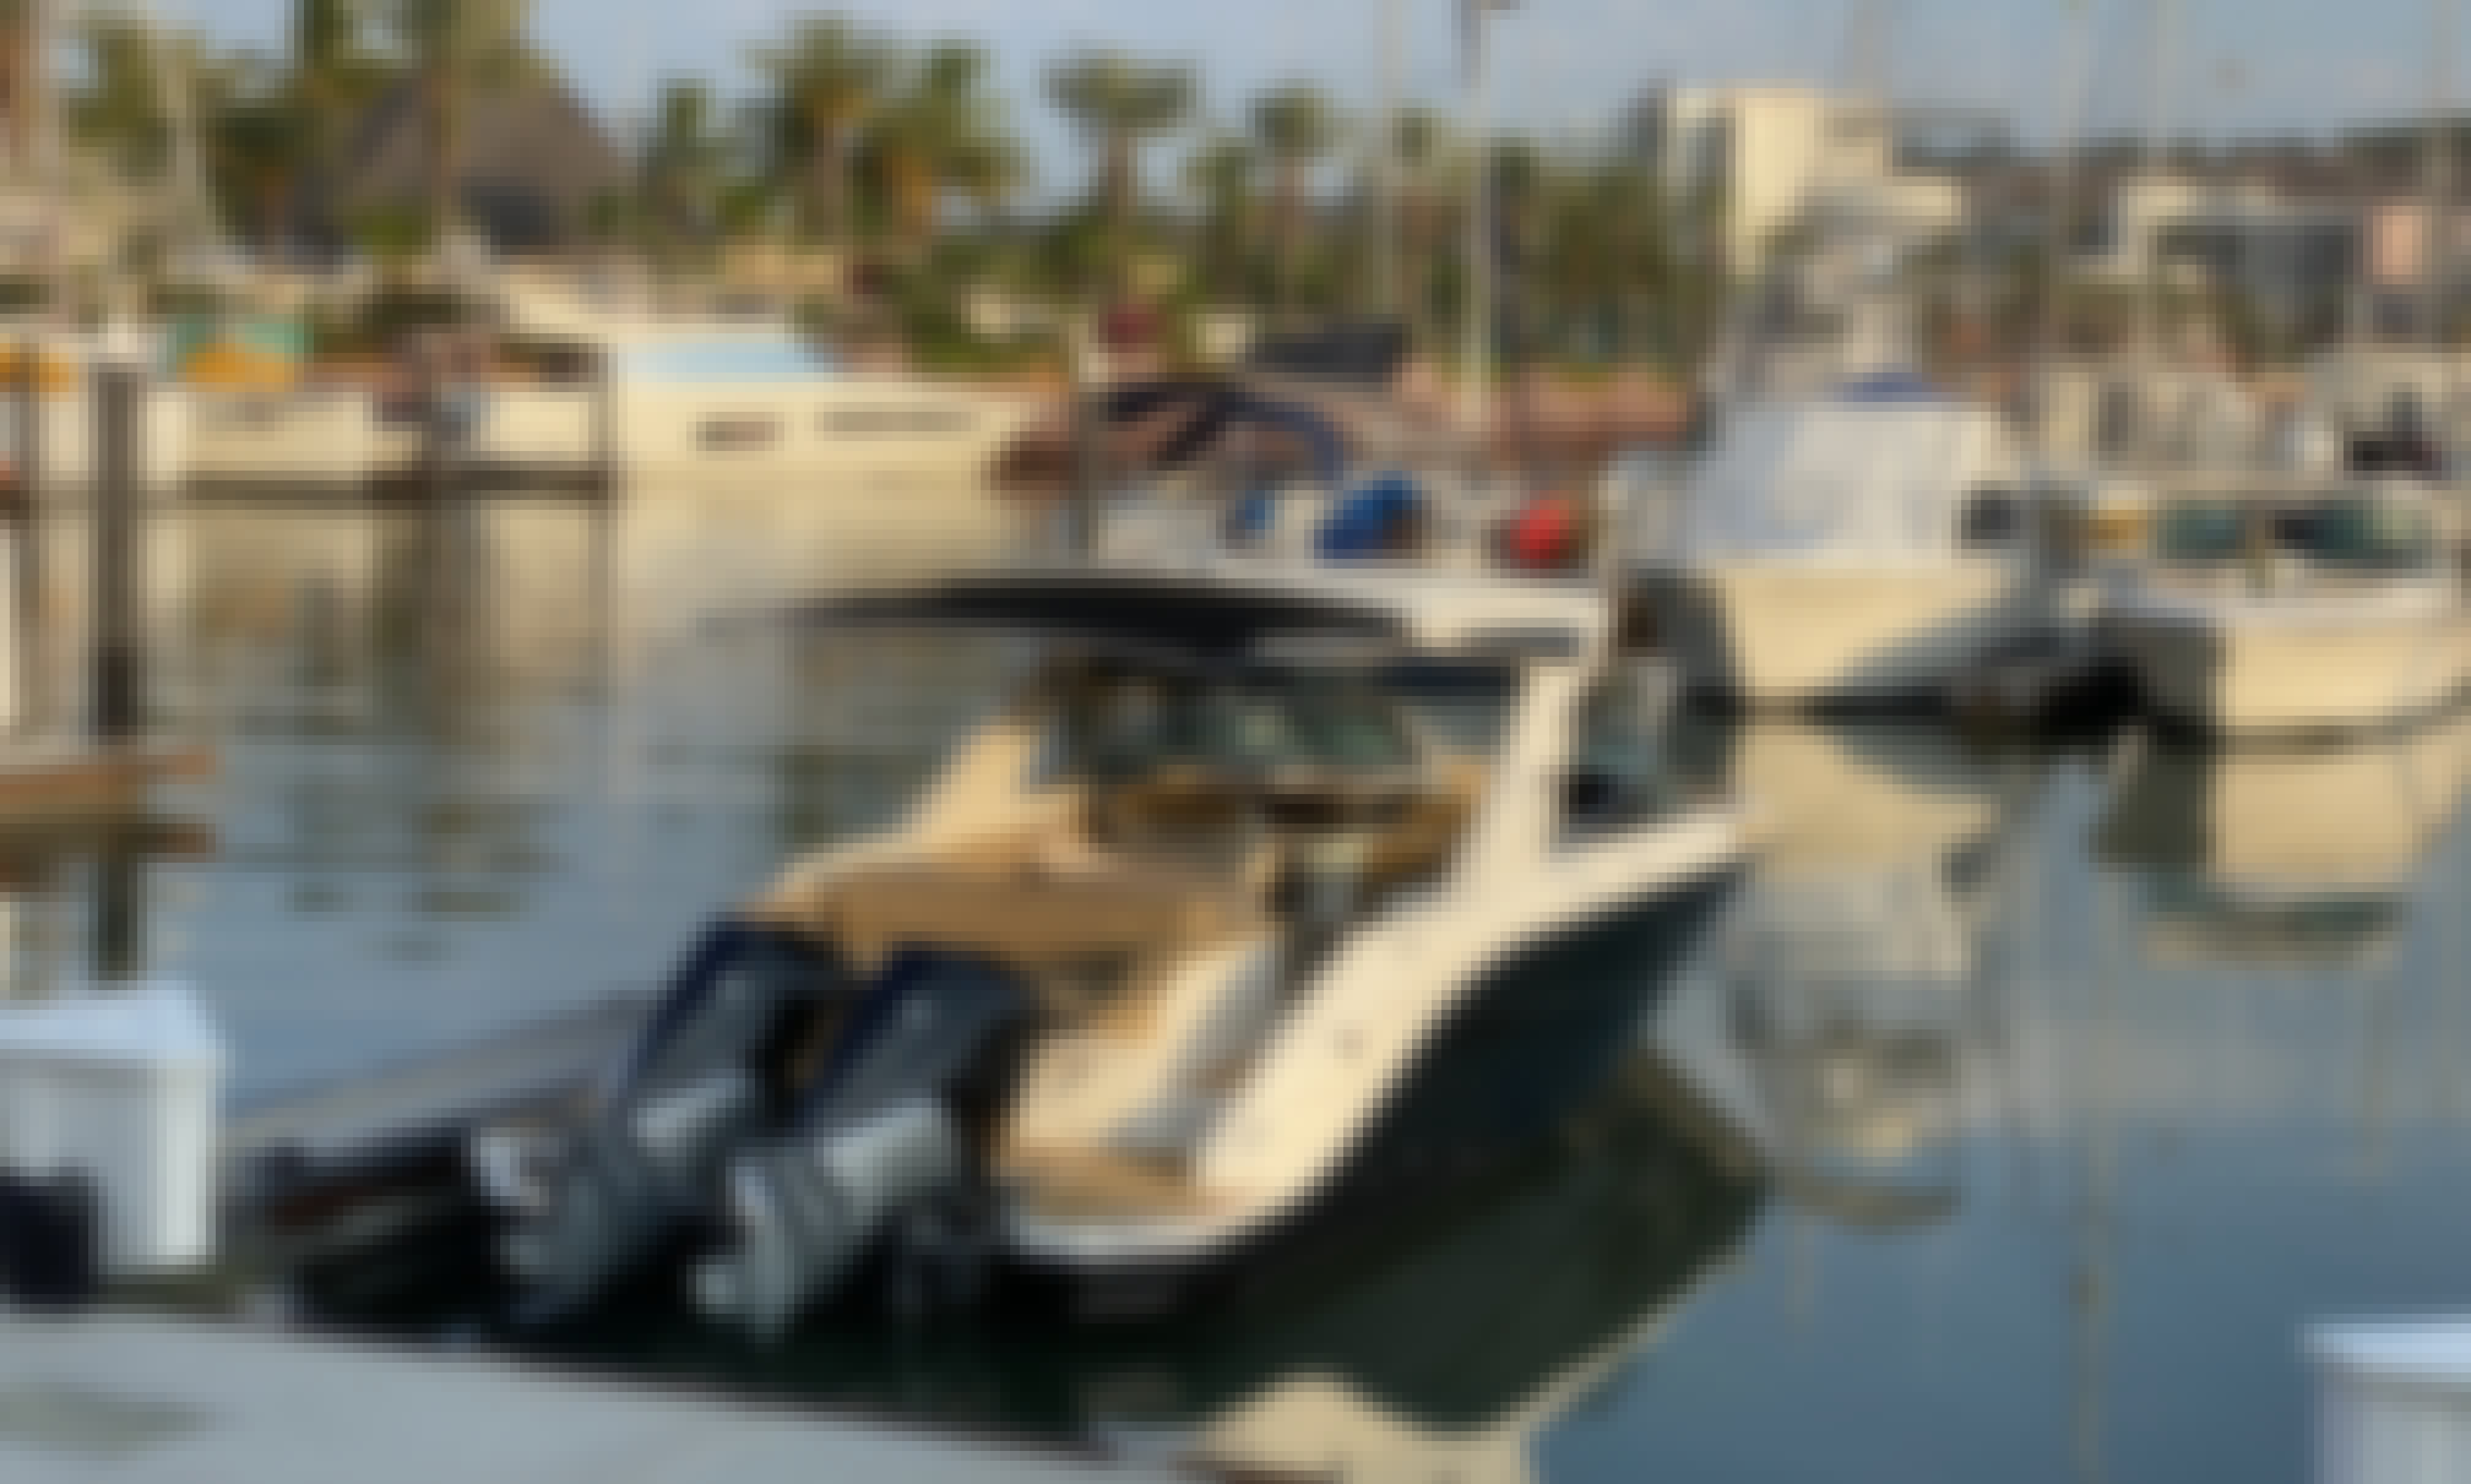 New 2019 Sea Ray 31 SLX in La Paz, Baja California Sur